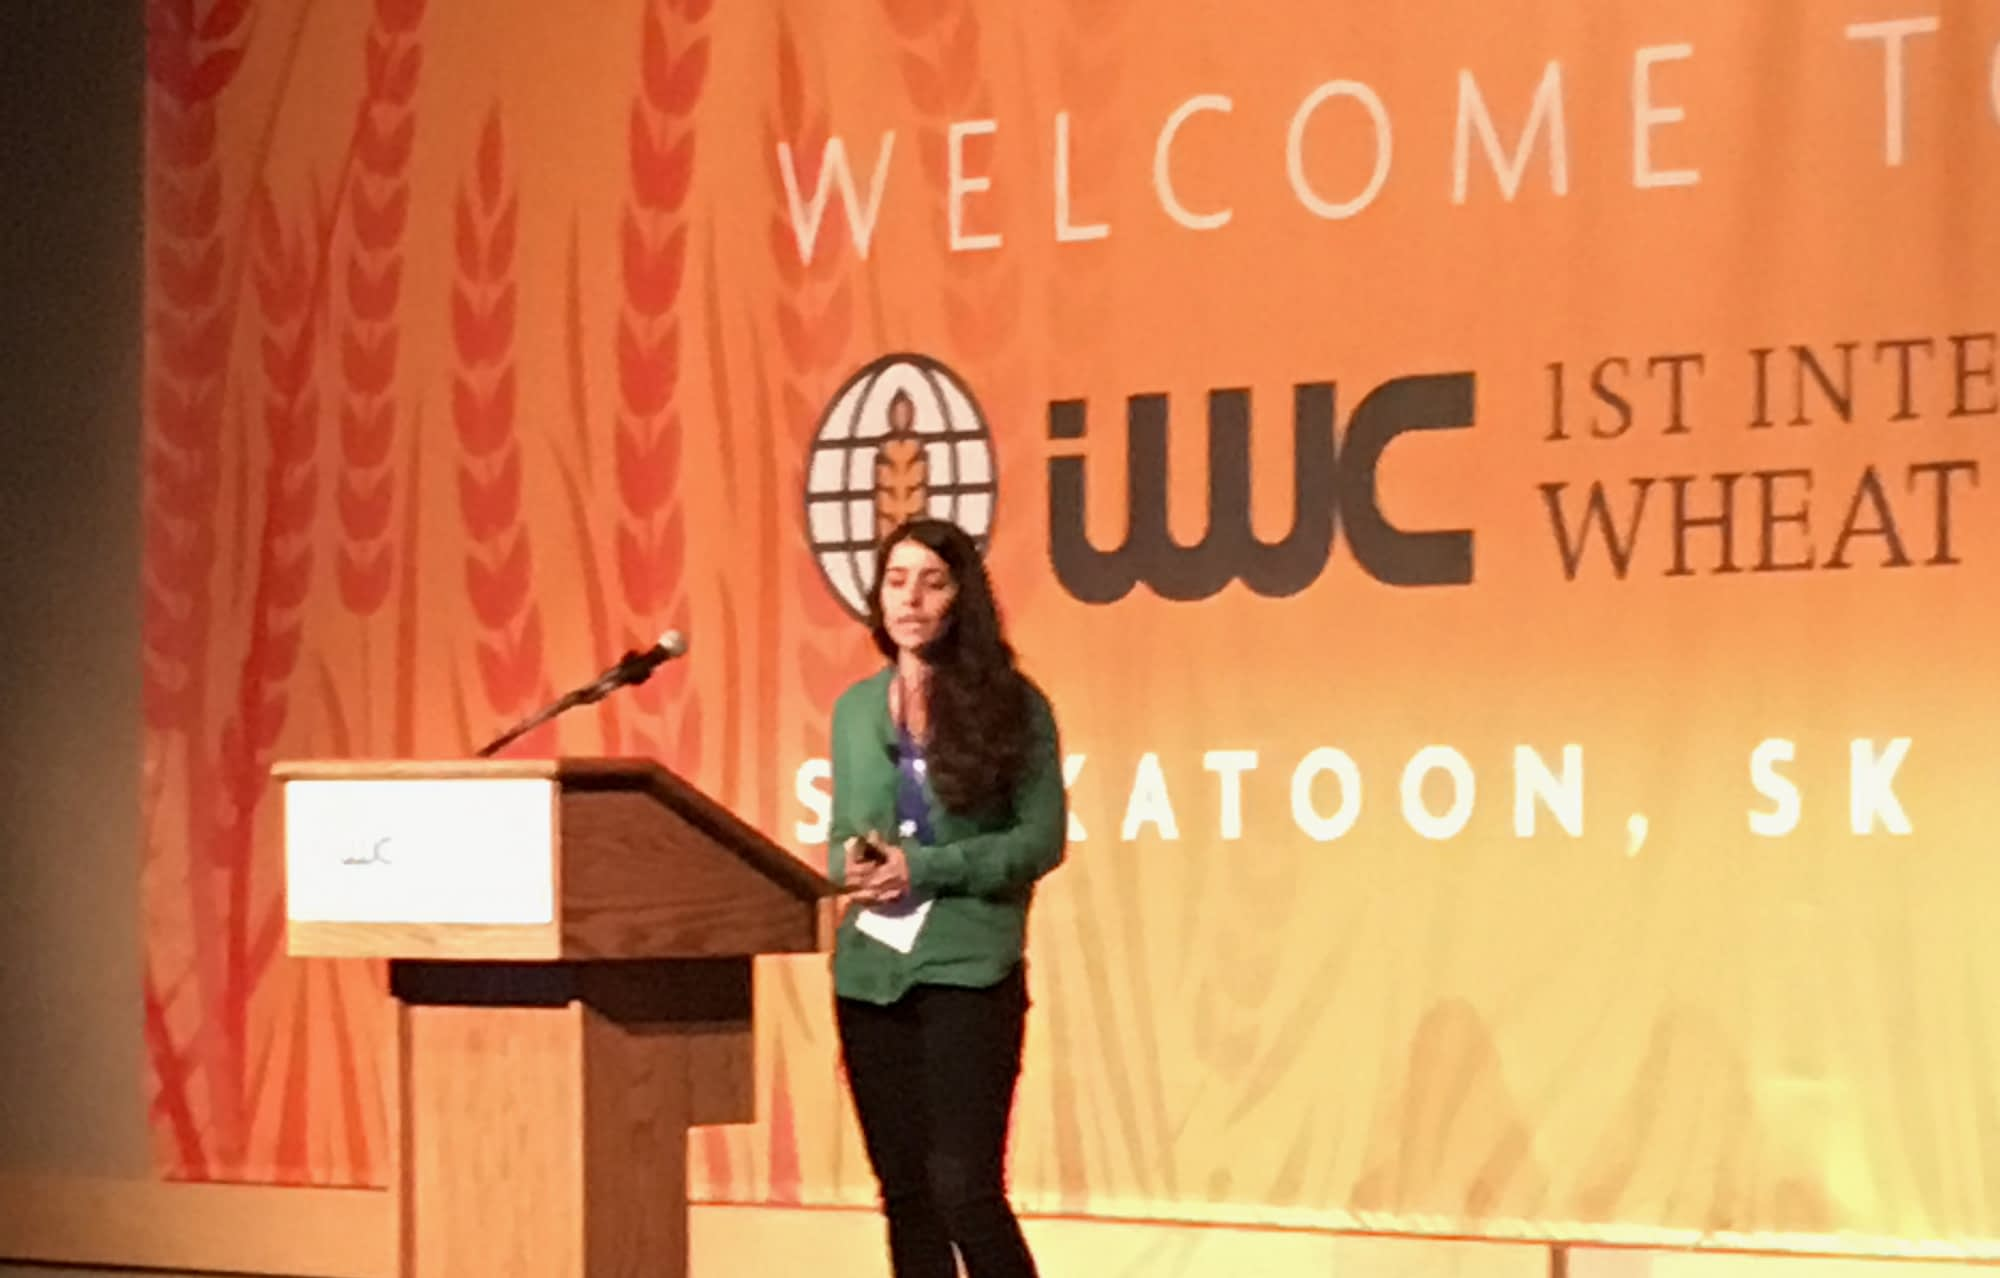 CIMMYT wheat physiologist Gemma Molero presents at the International Wheat Congress. (Photo: Marcia MacNeil/CIMMYT)